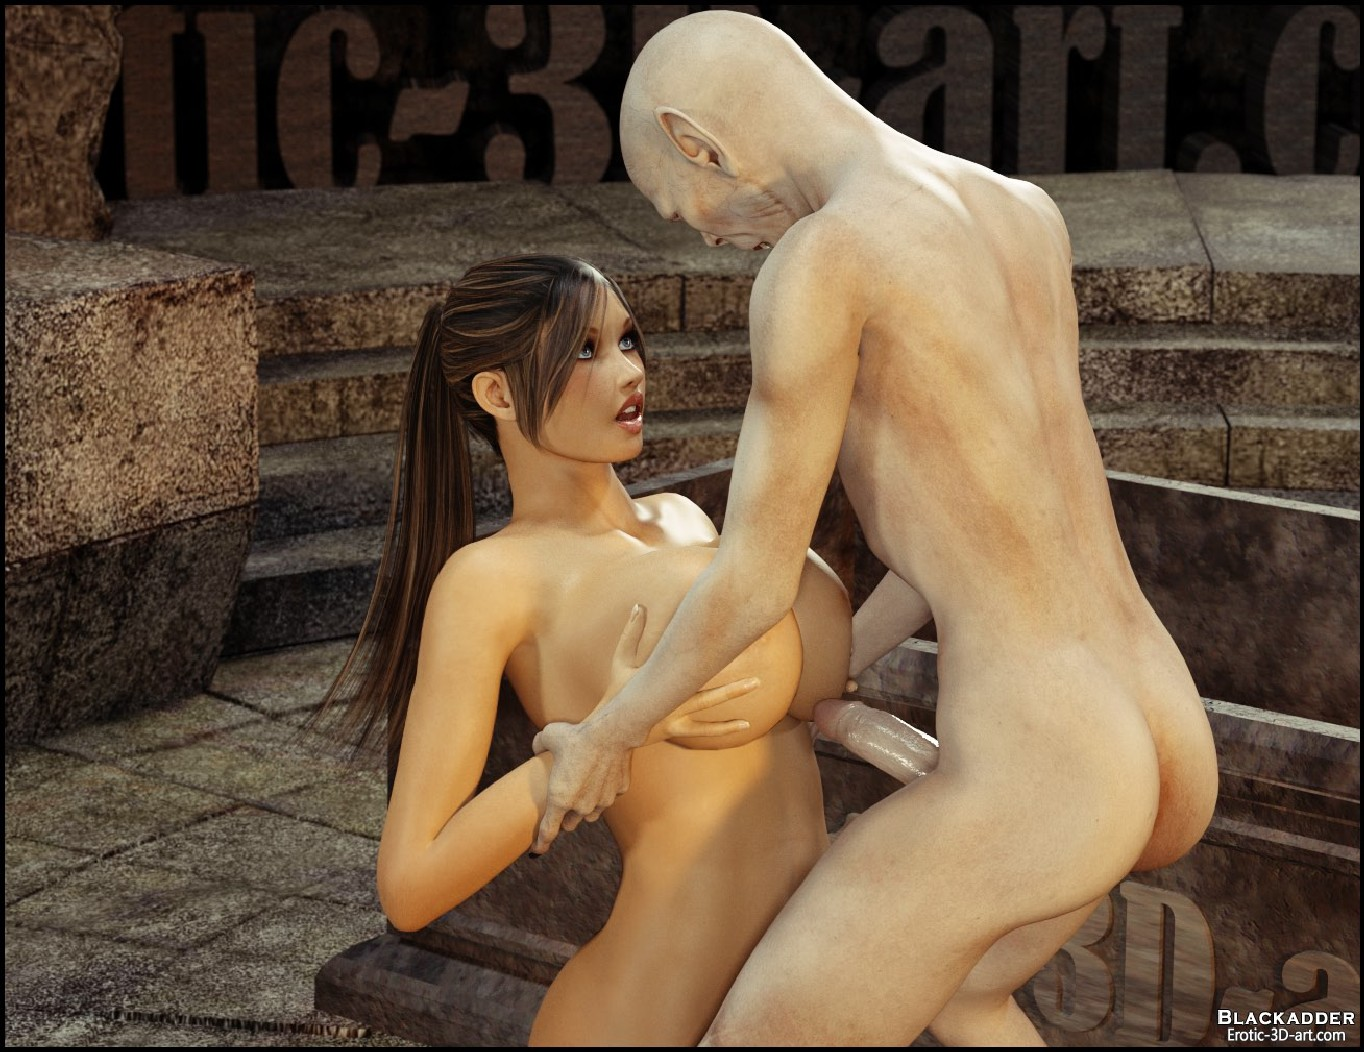 3d animated lara croft fuck 3gp download erotic pics